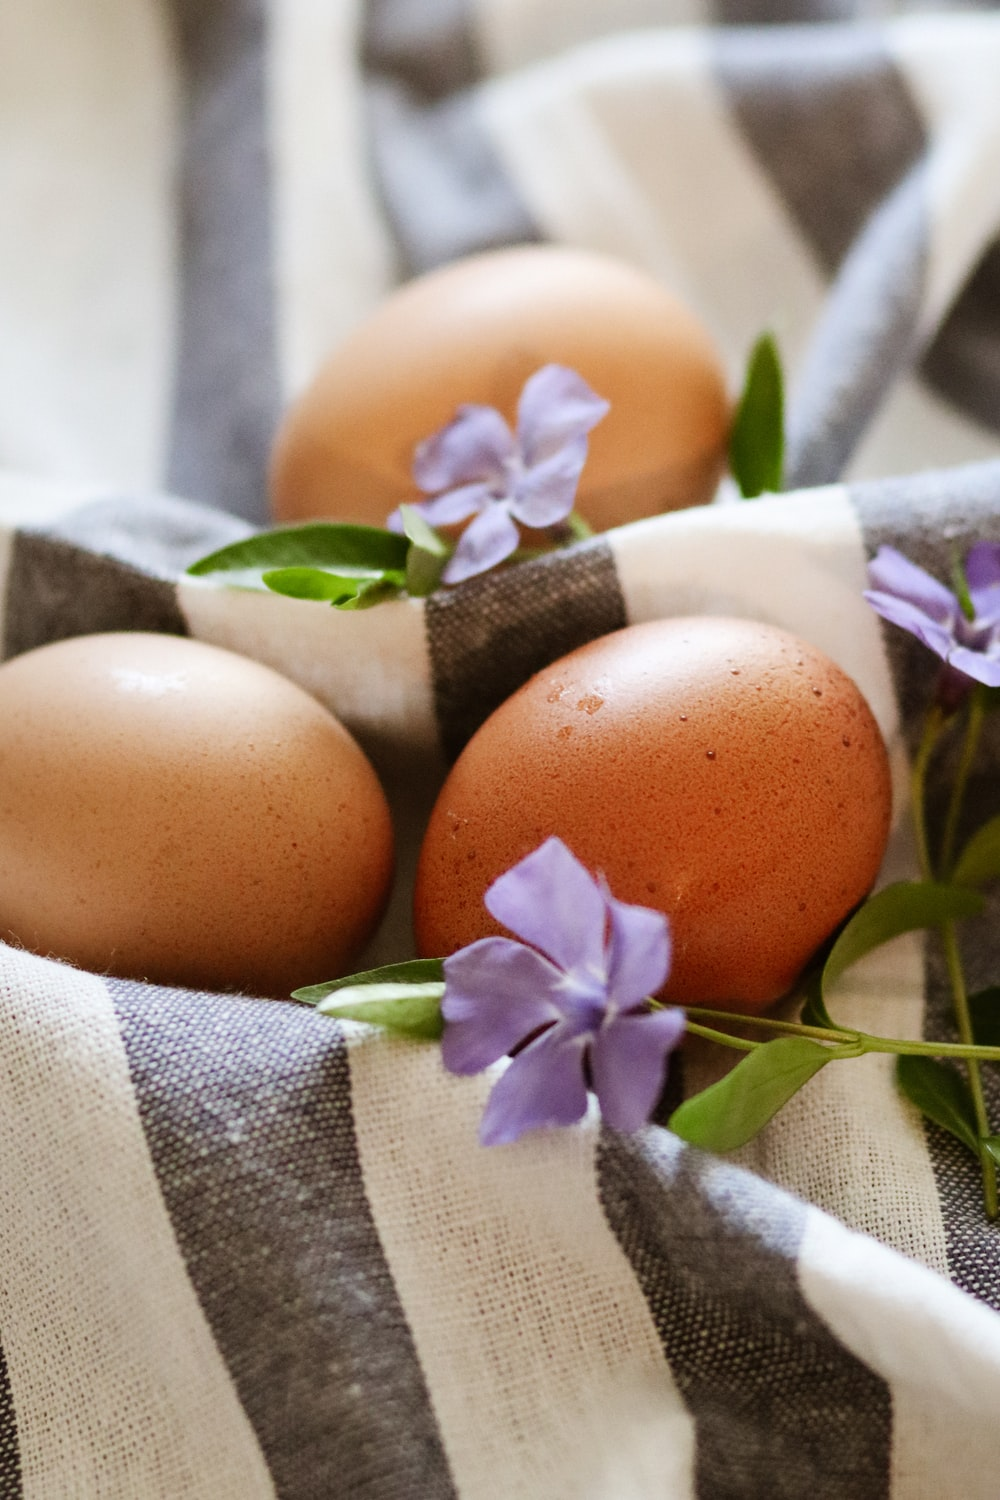 brown egg on white and purple floral textile